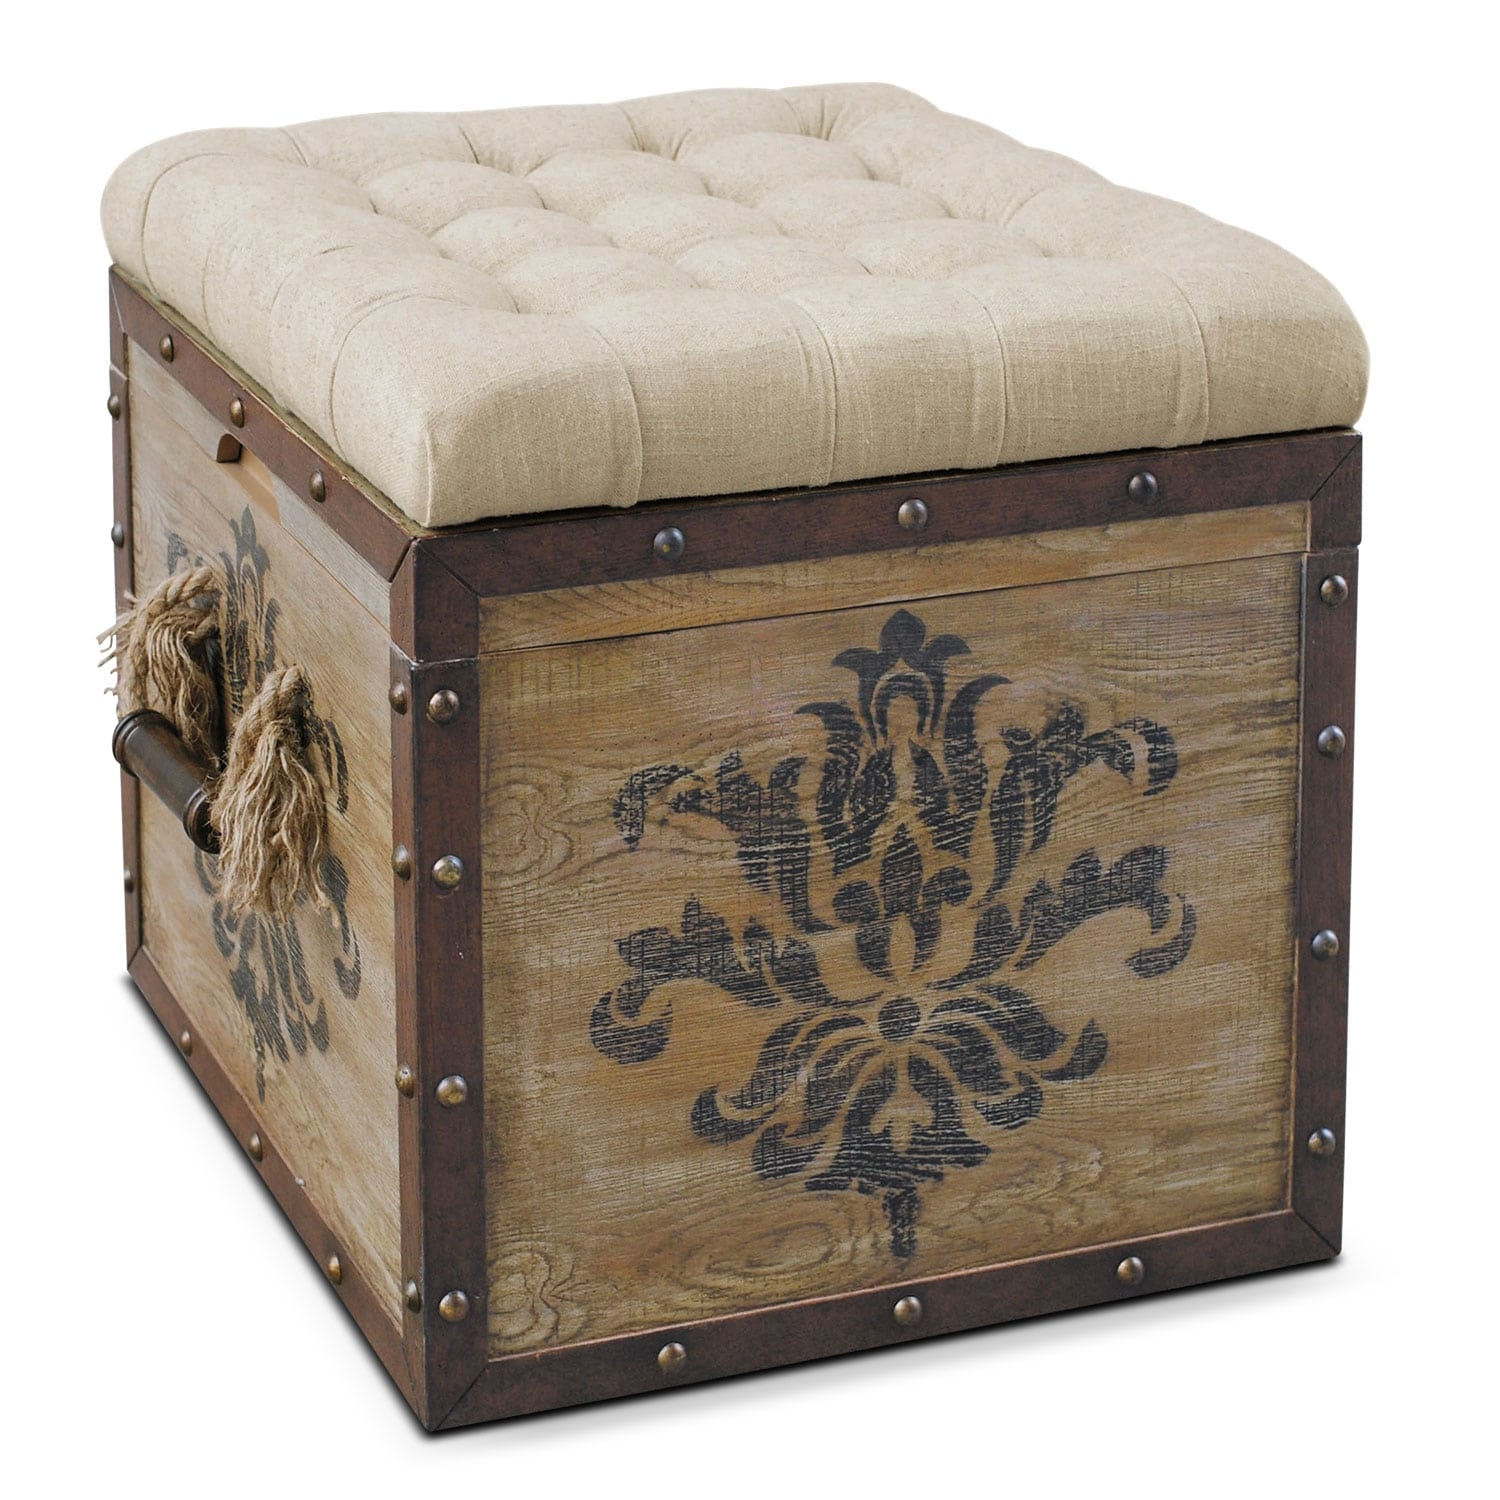 Teca Storage Ottoman Rustic Value City Furniture : 385867 from valuecityfurniture.com size 1500 x 1500 jpeg 699kB